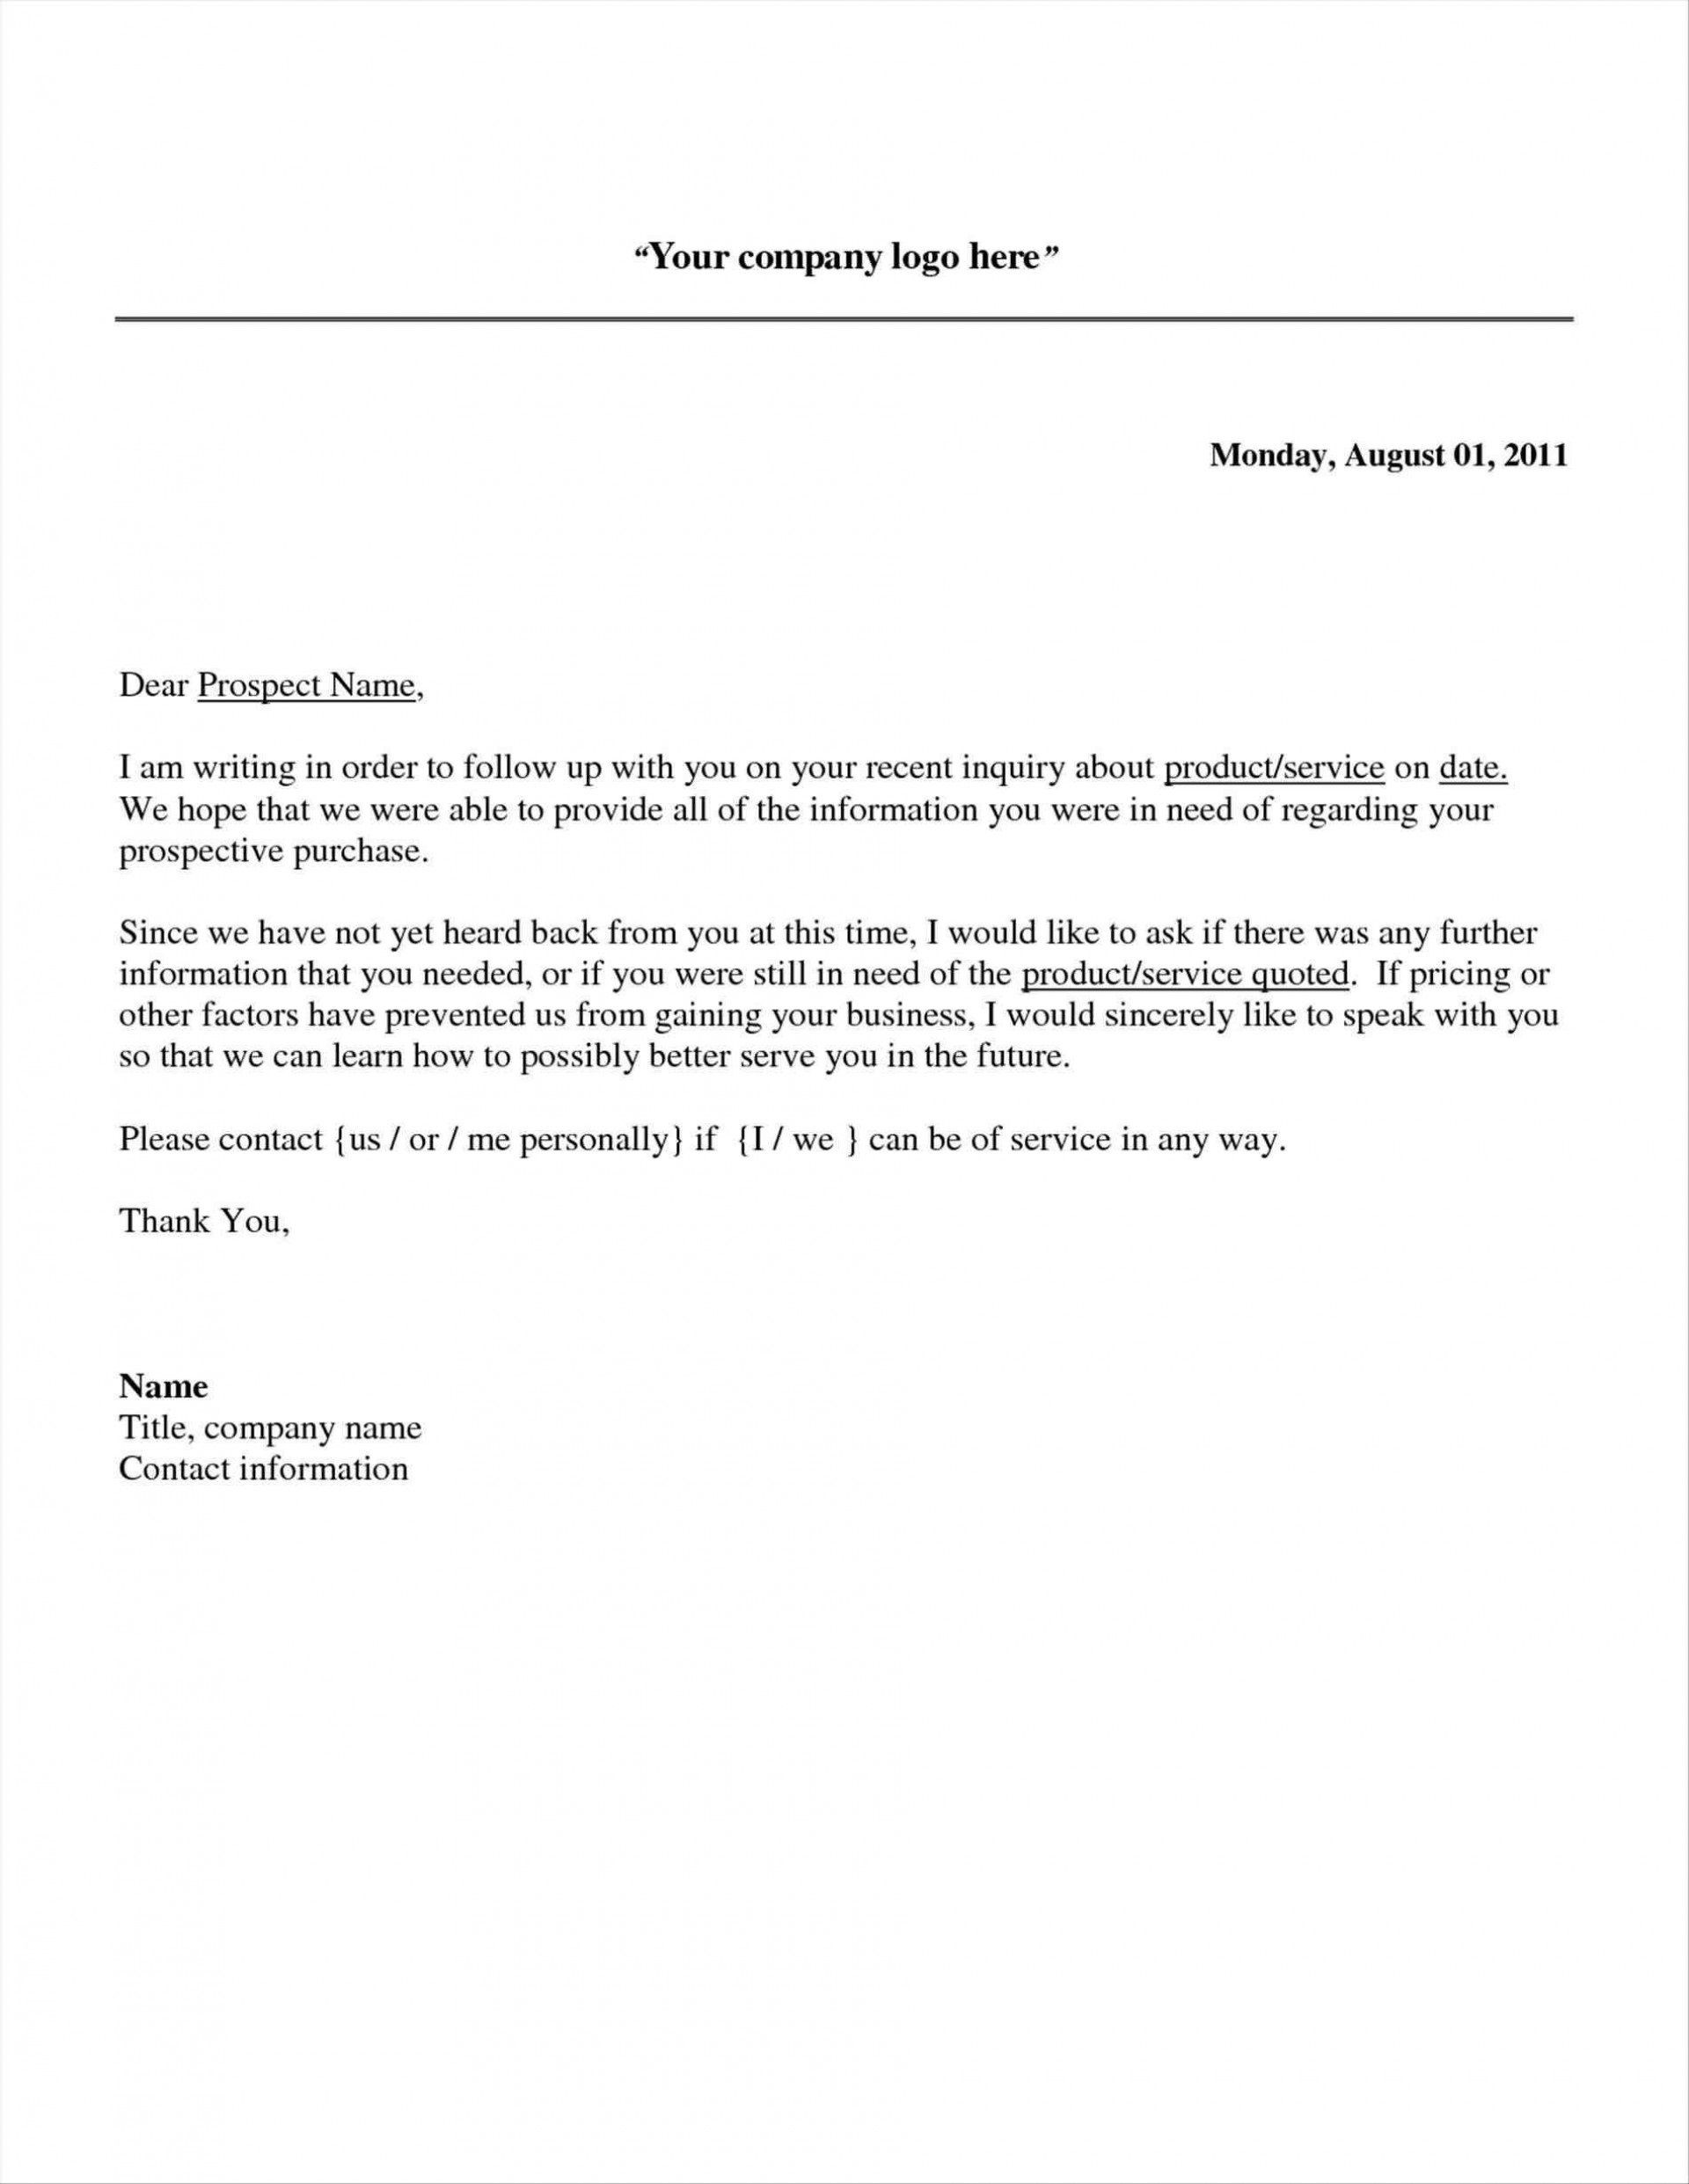 006 Wondrou Follow Up Email Letter For Job Application Picture  Template Example After Writing A1920